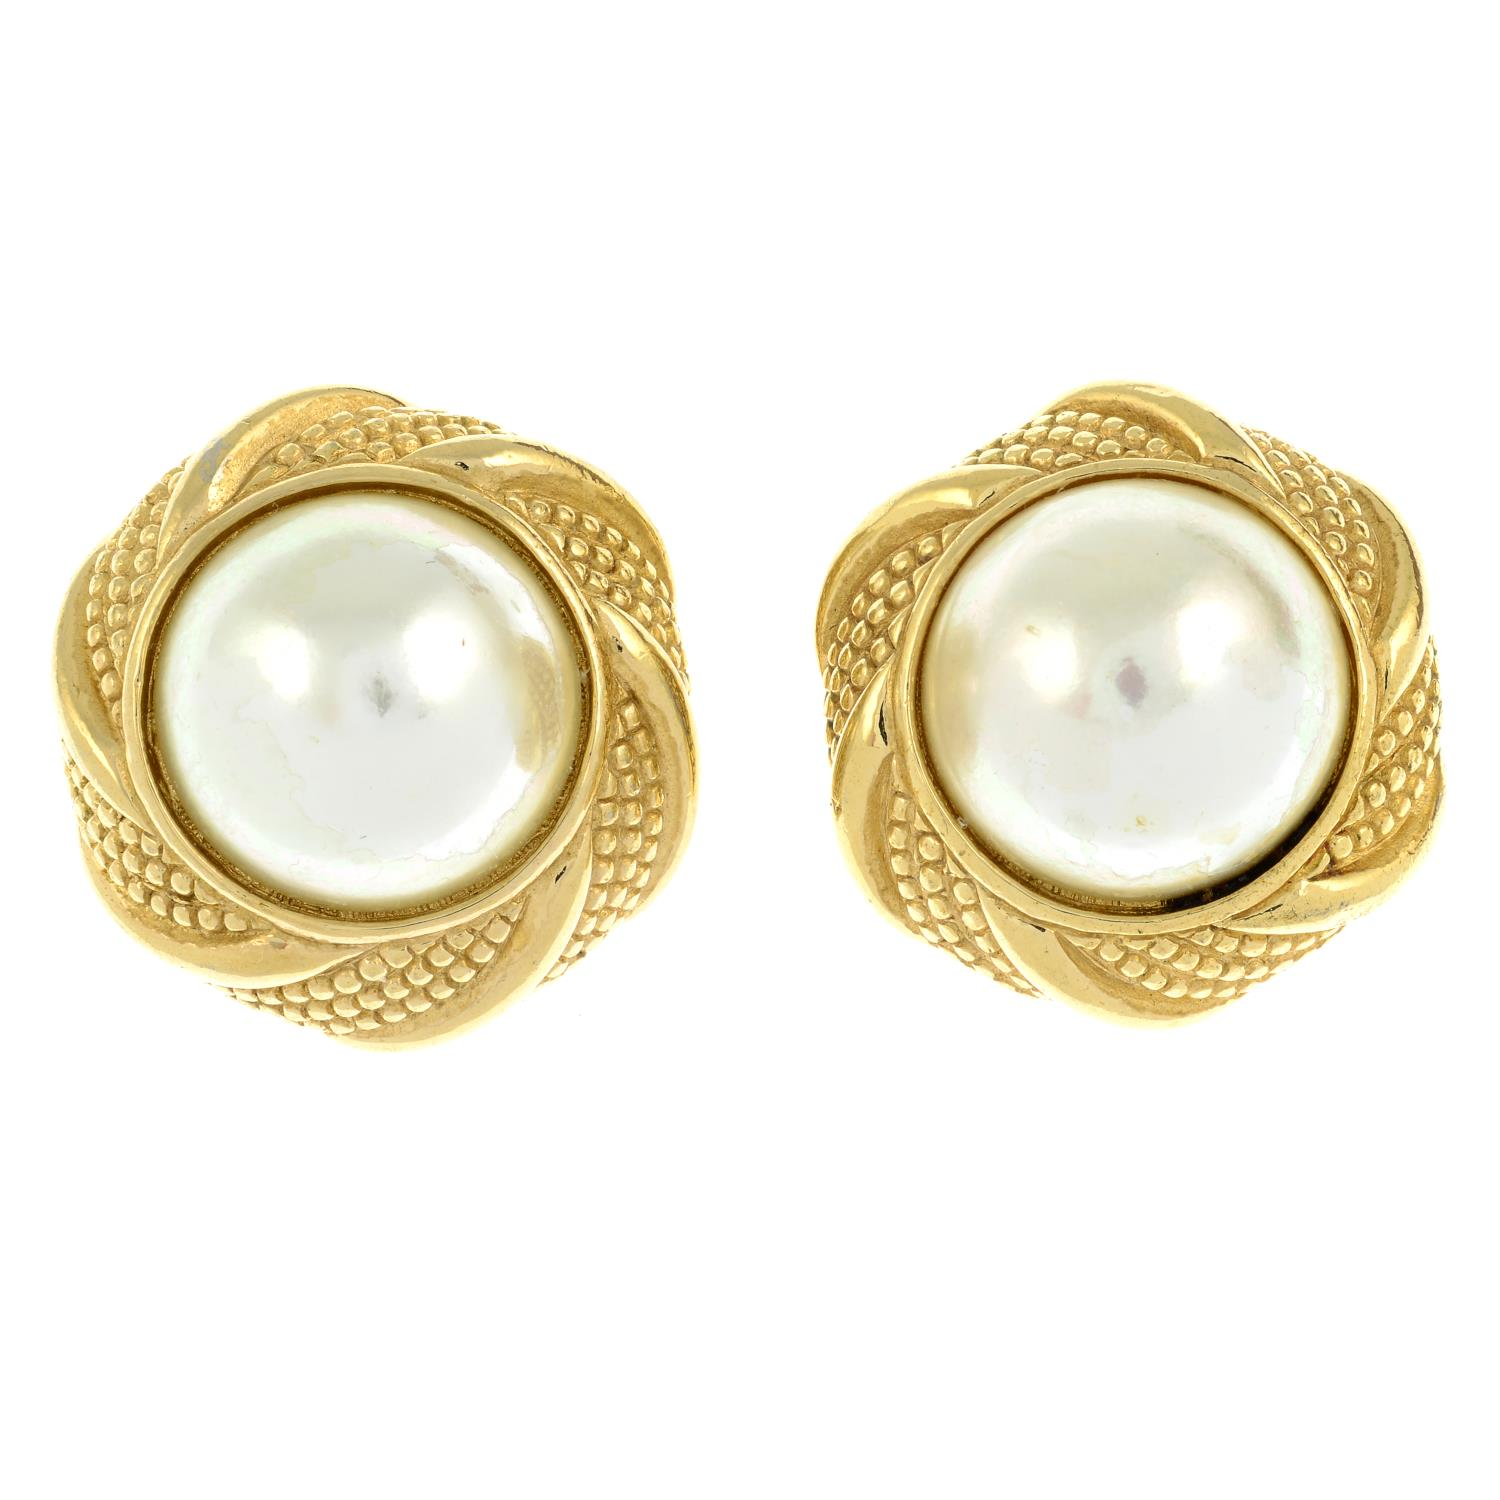 A pair of large imitation pearl clip-on earrings, by Christian Dior.Signed Chr.